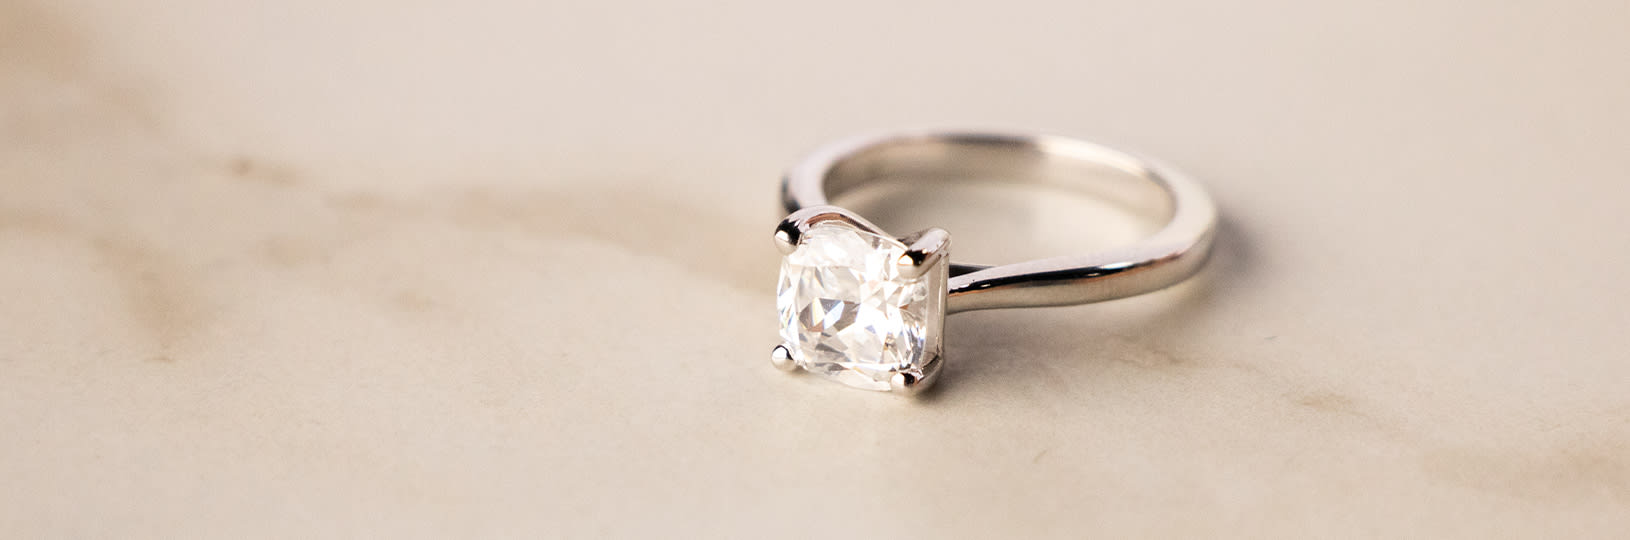 A solitaire lab created diamond simulant engagement ring.